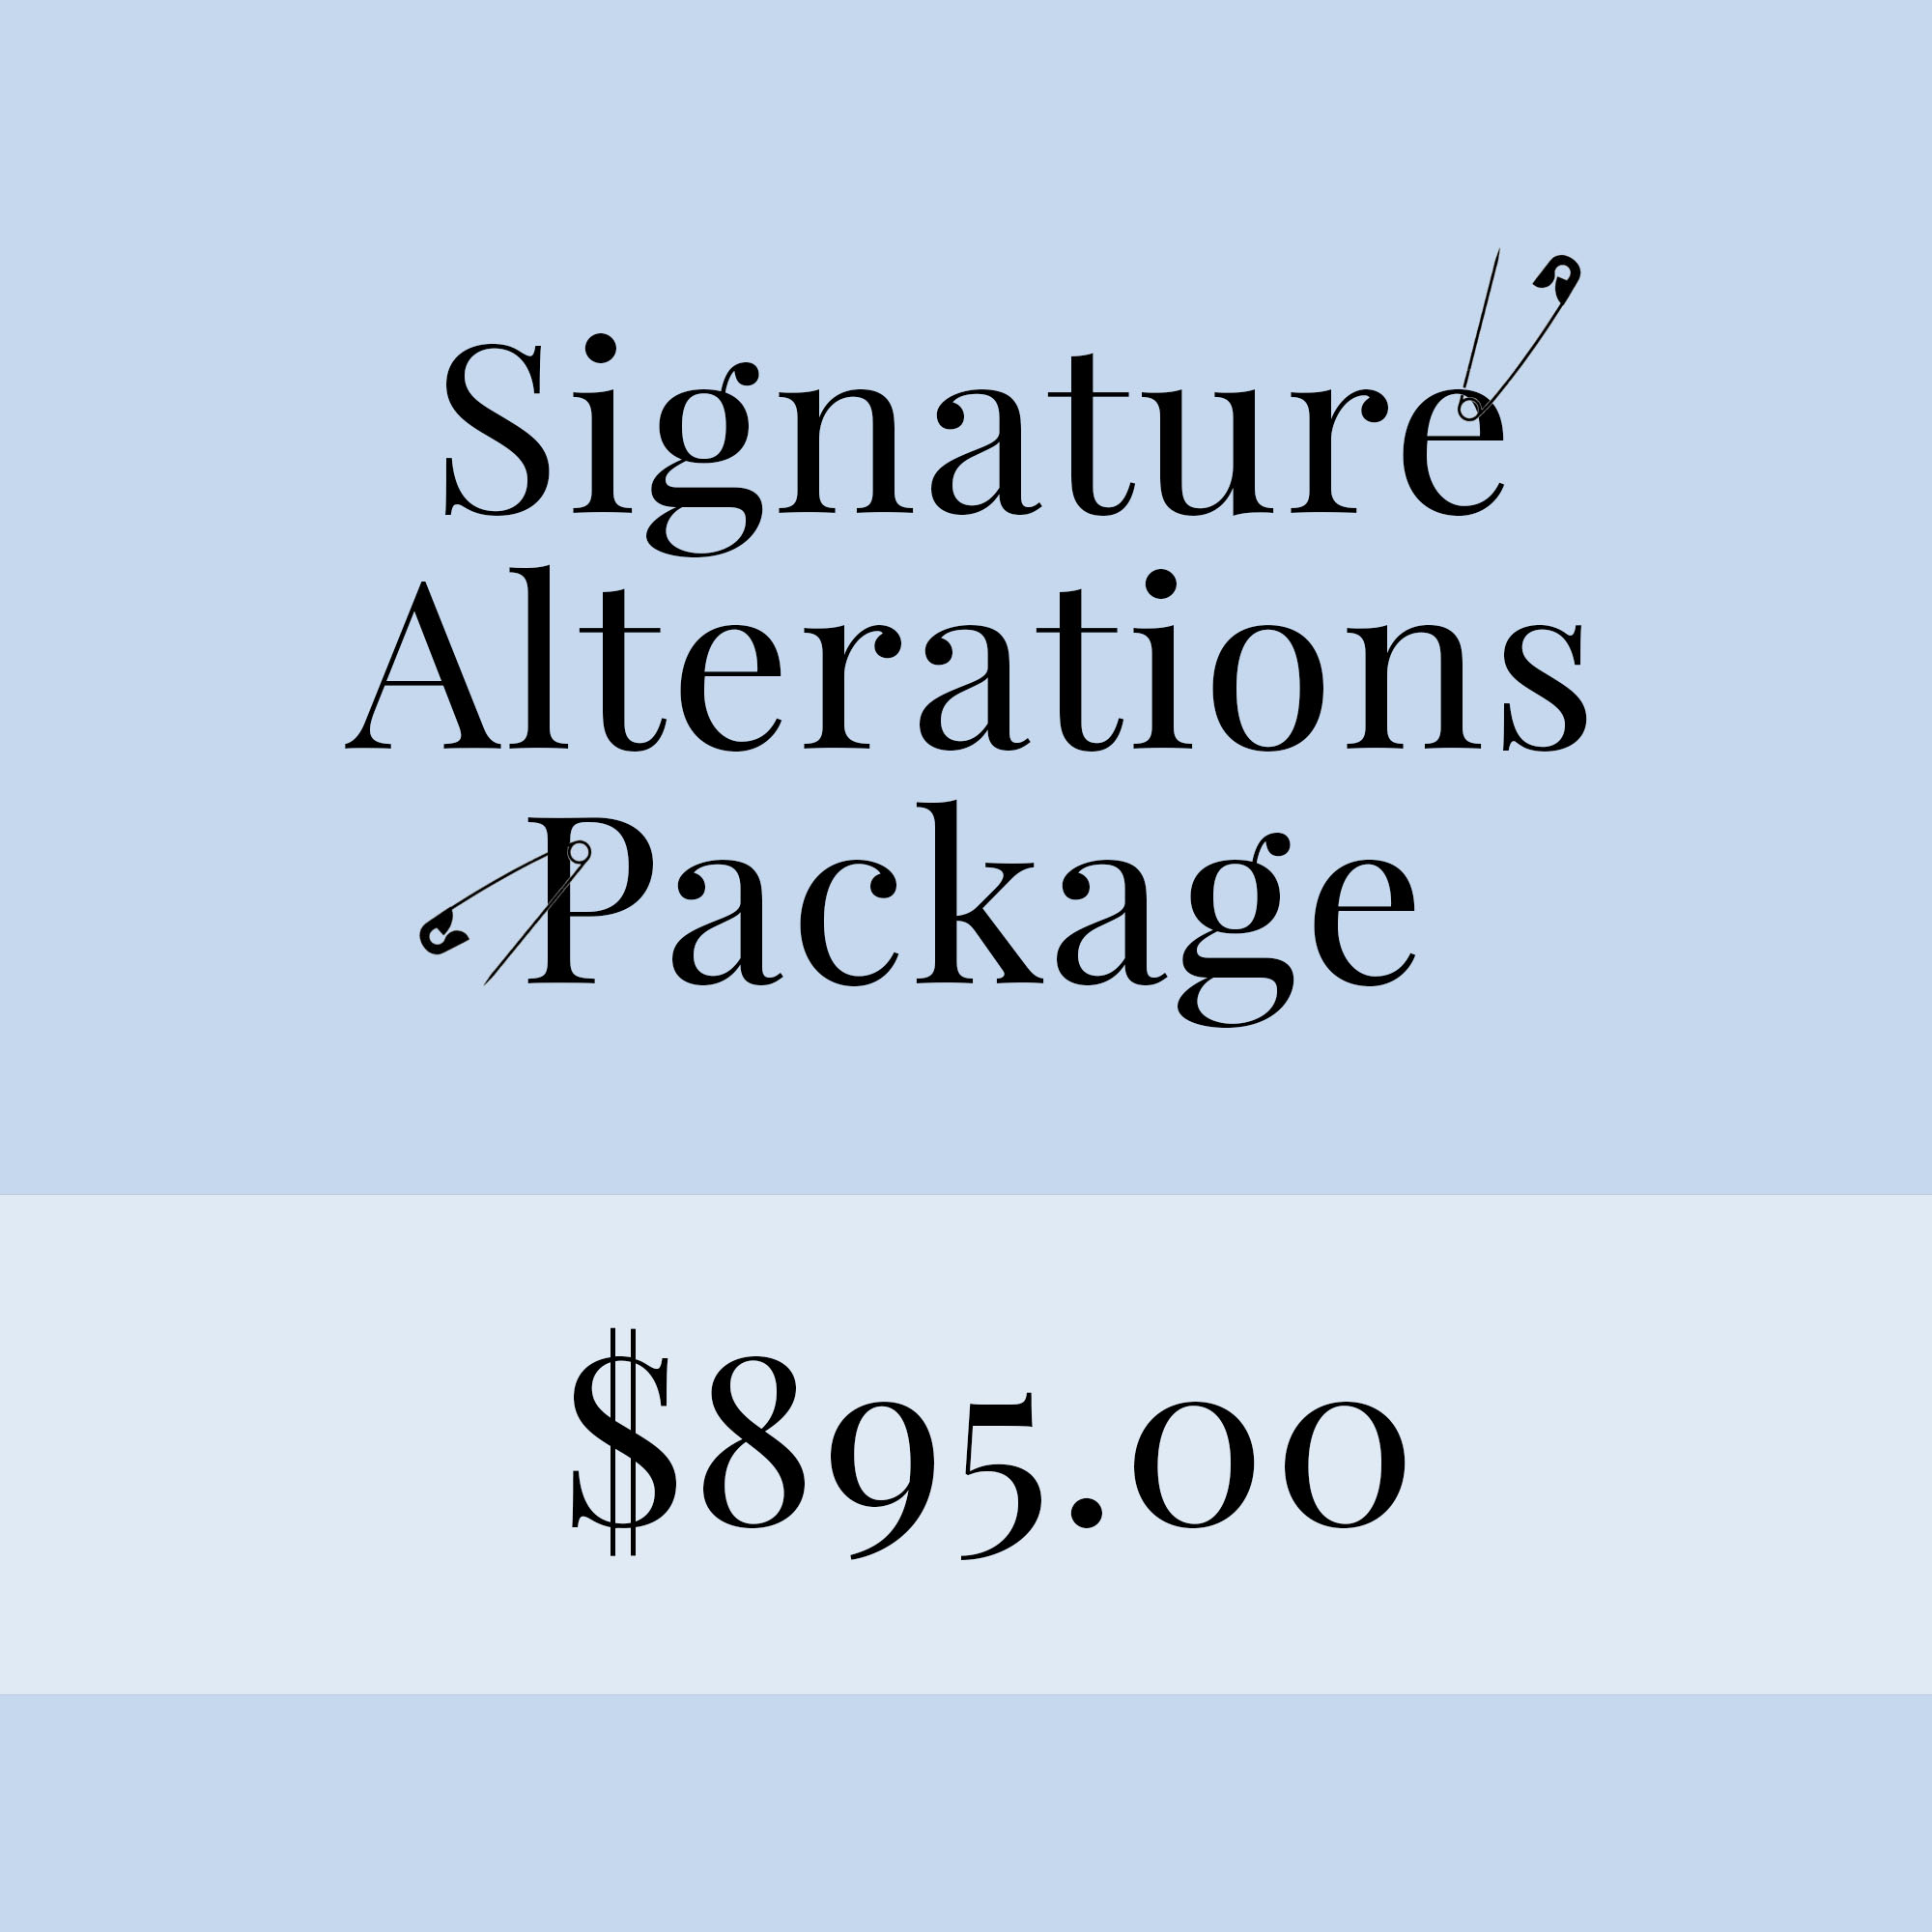 Alterations Pricing Image $895